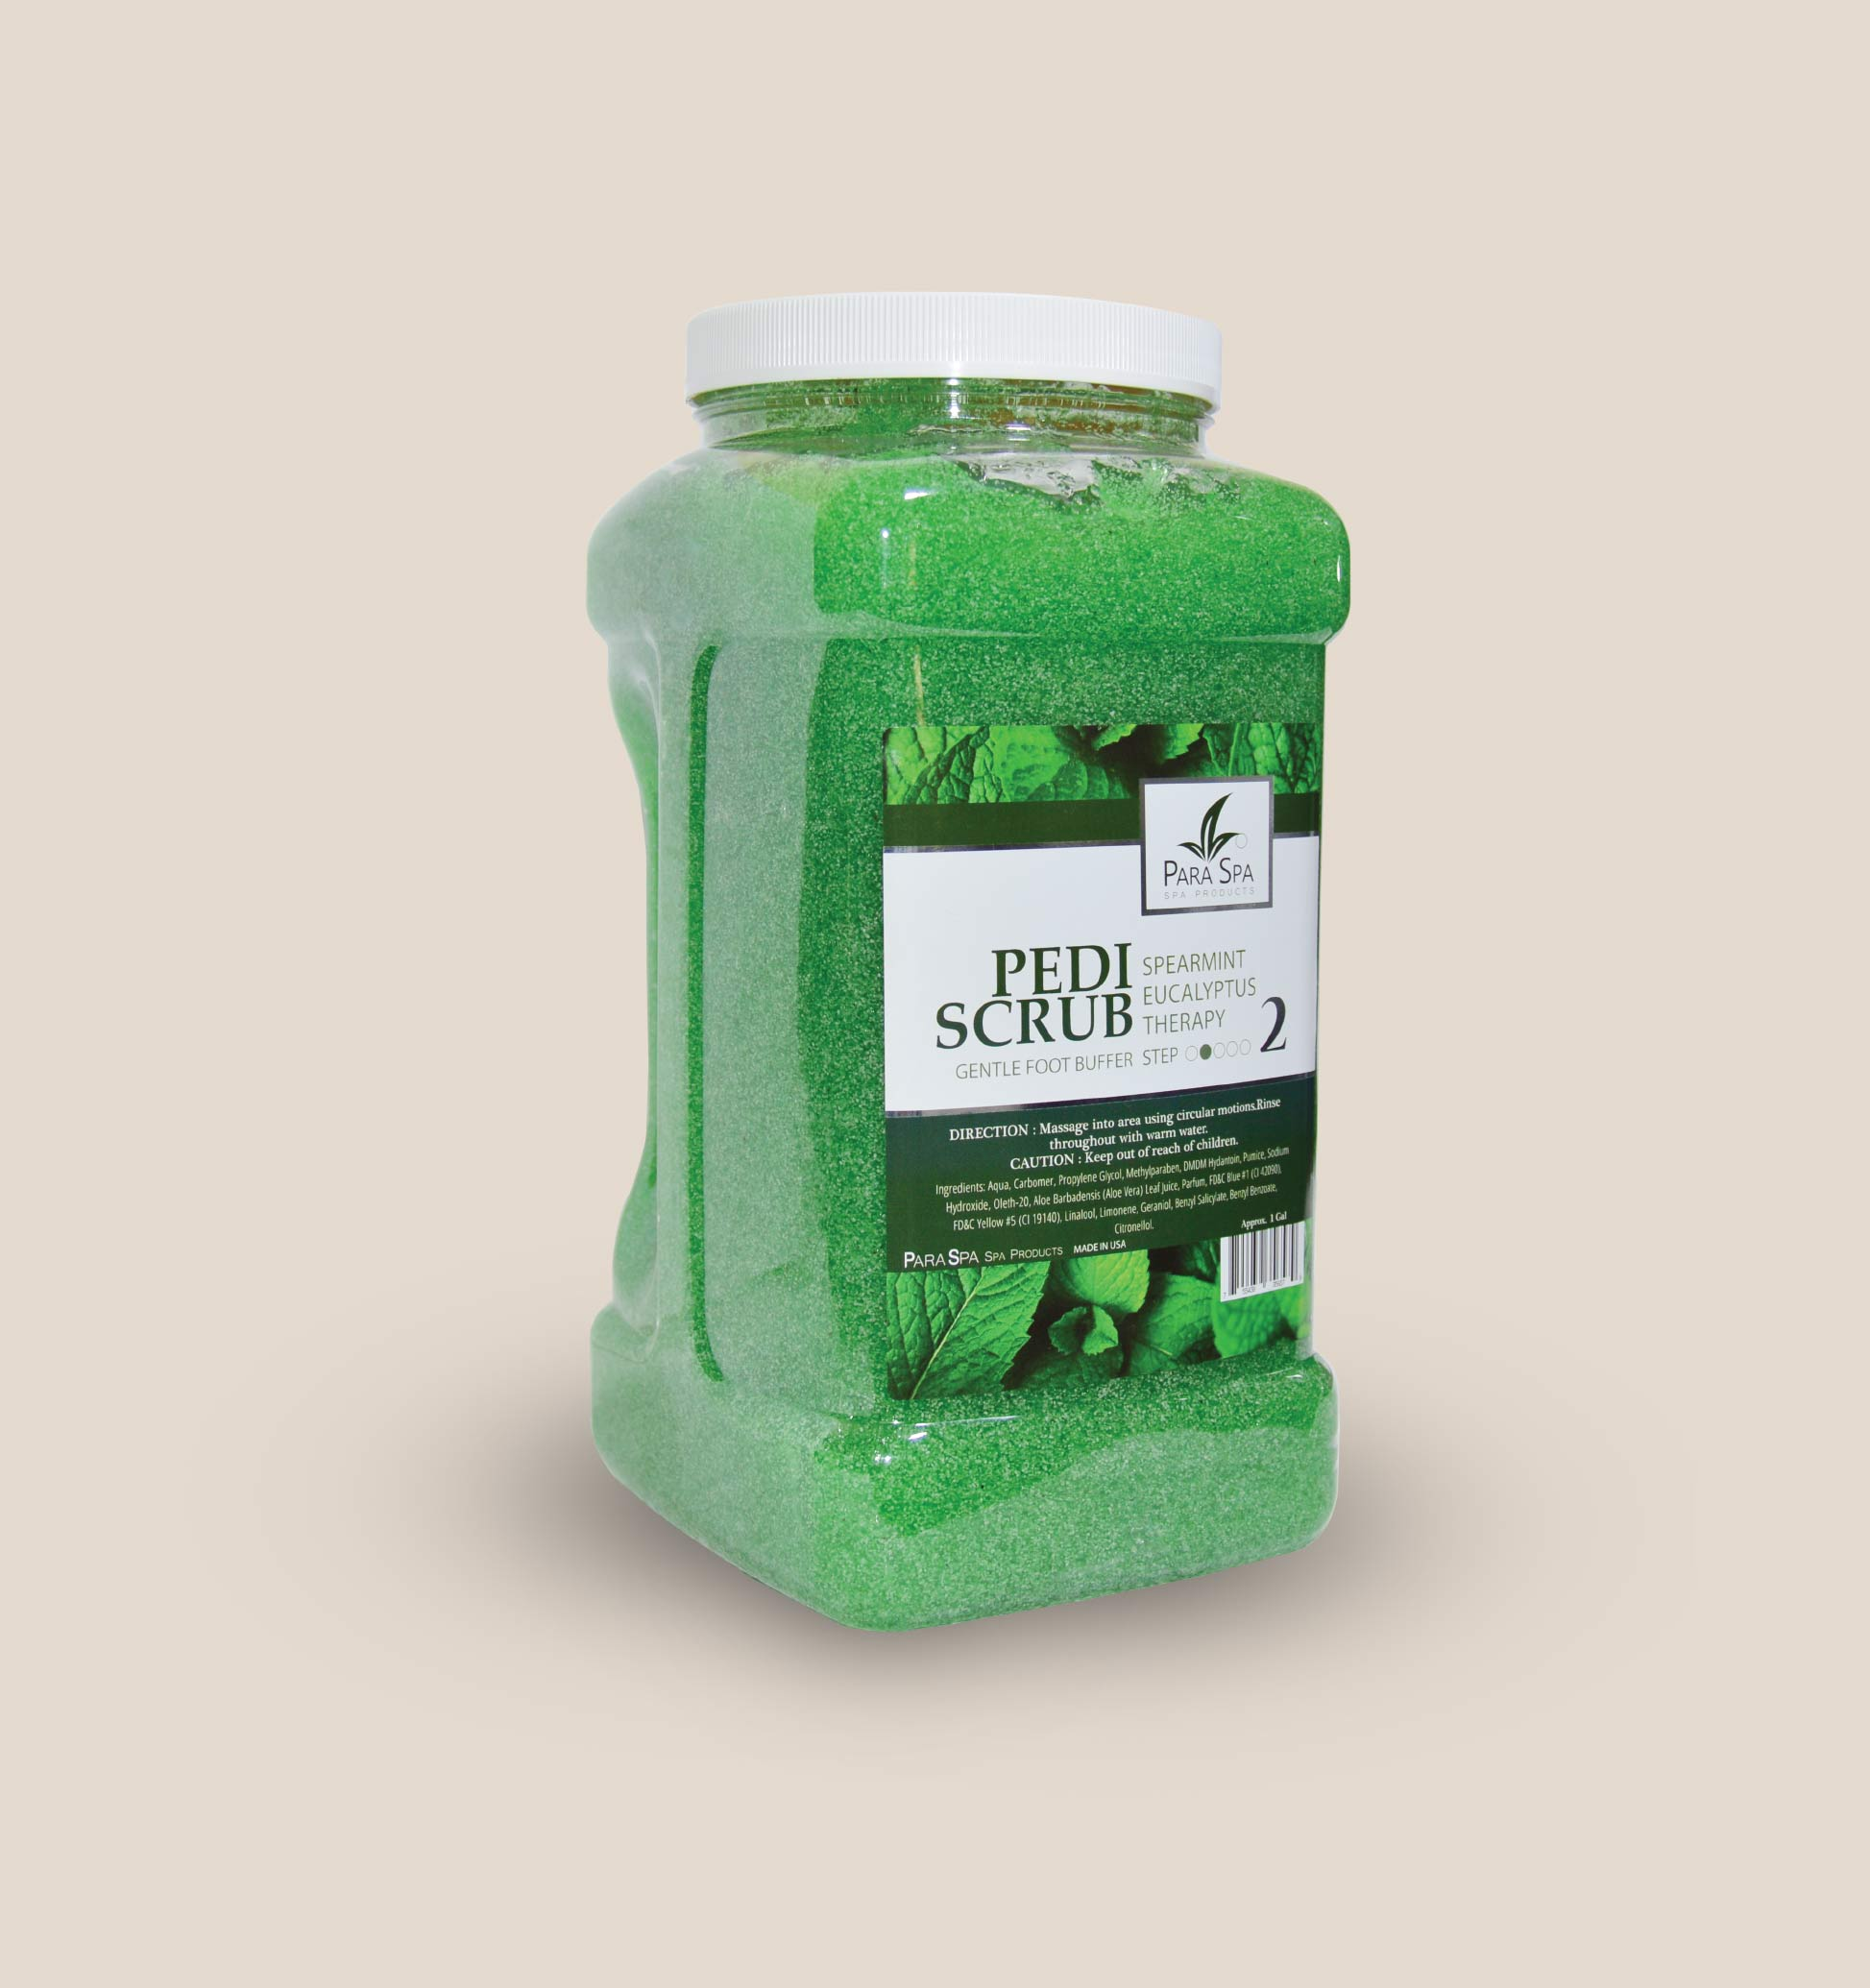 PEDI GEL SCRUB - SPEARMINT 1 GAL